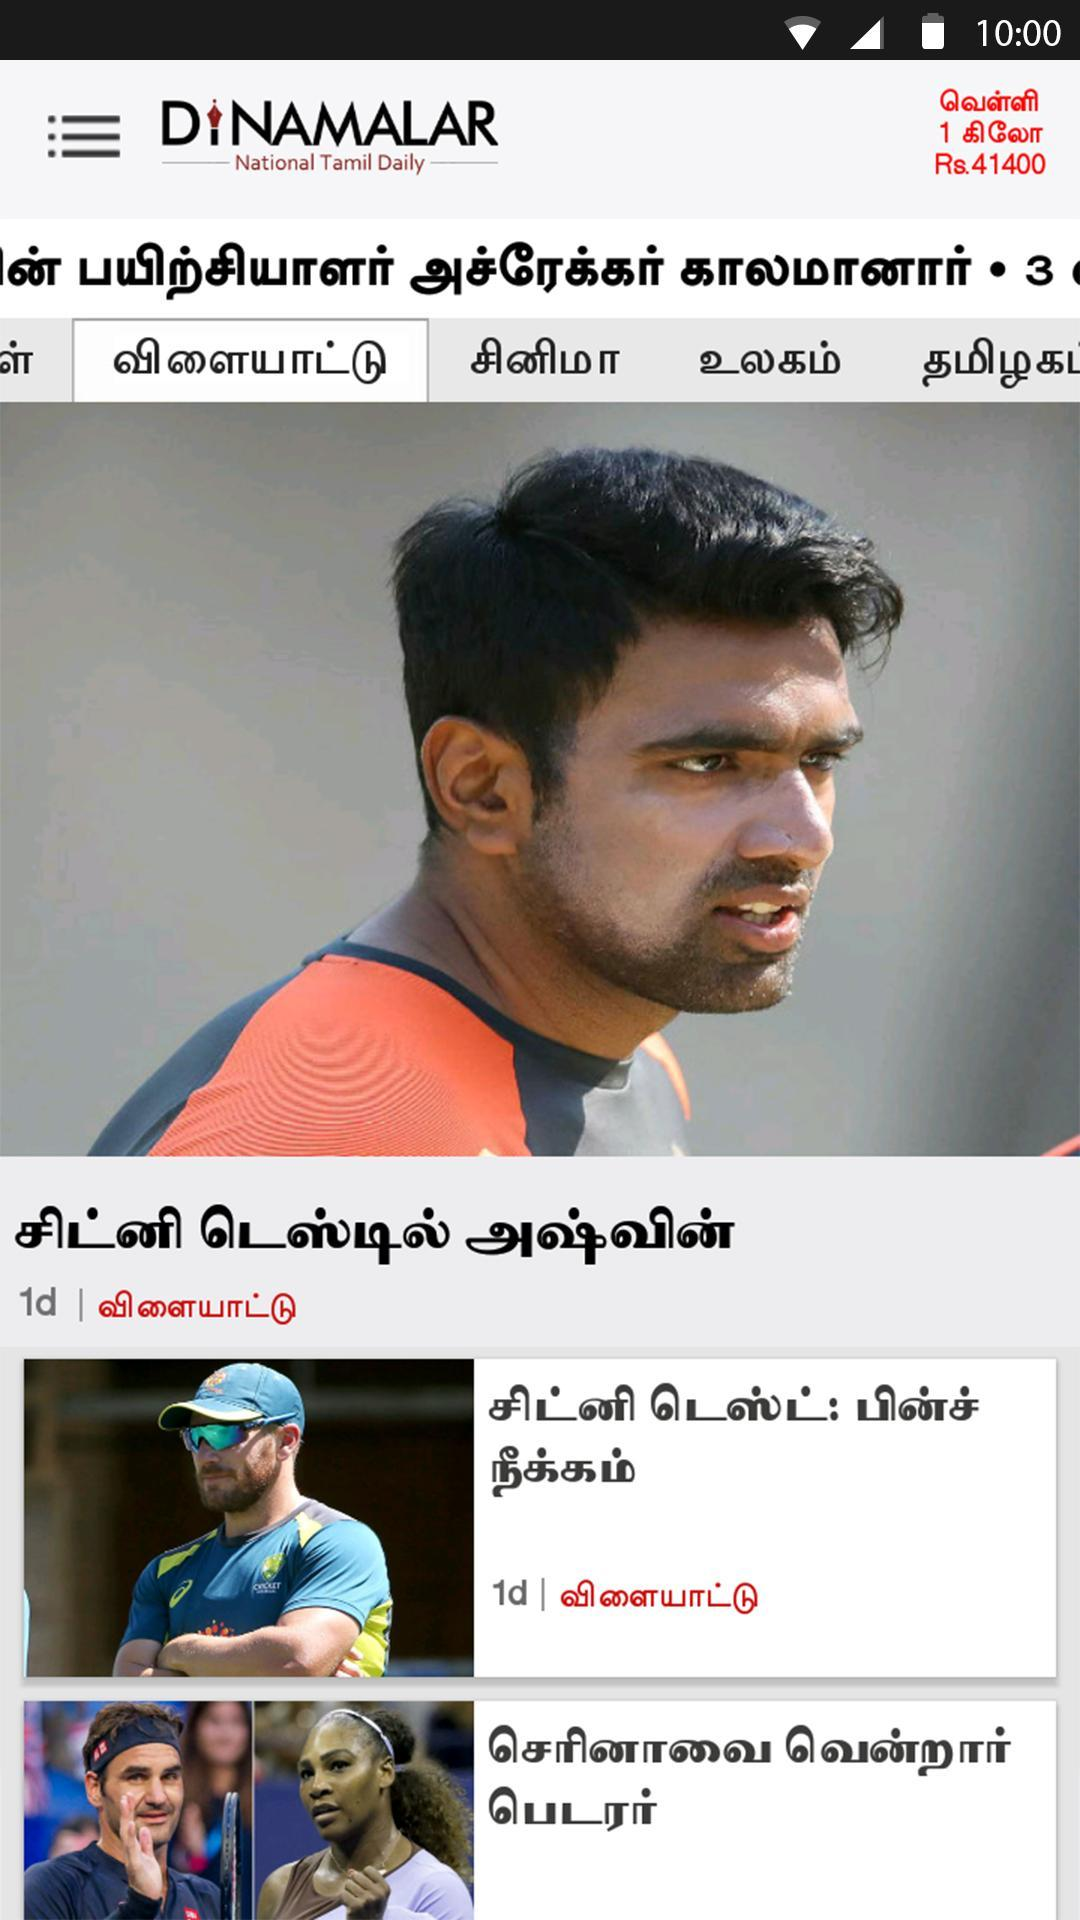 Dinamalar for Android - APK Download